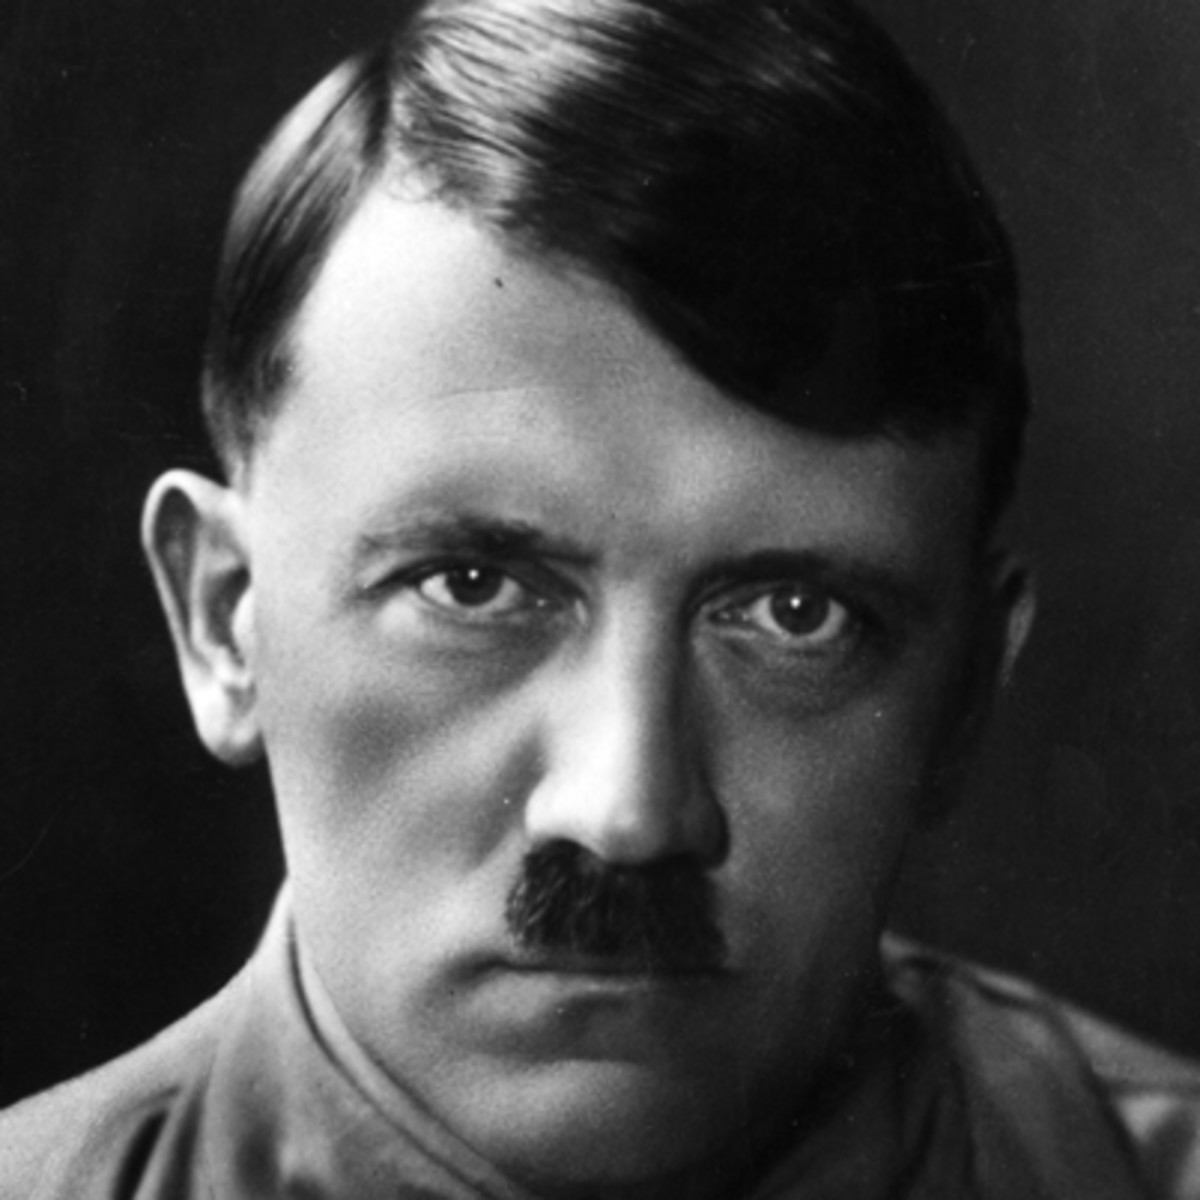 Adolf Hitler was the powerful and charismatic leader of Nazi Germany who some hold as solely responsible for the Second World War.